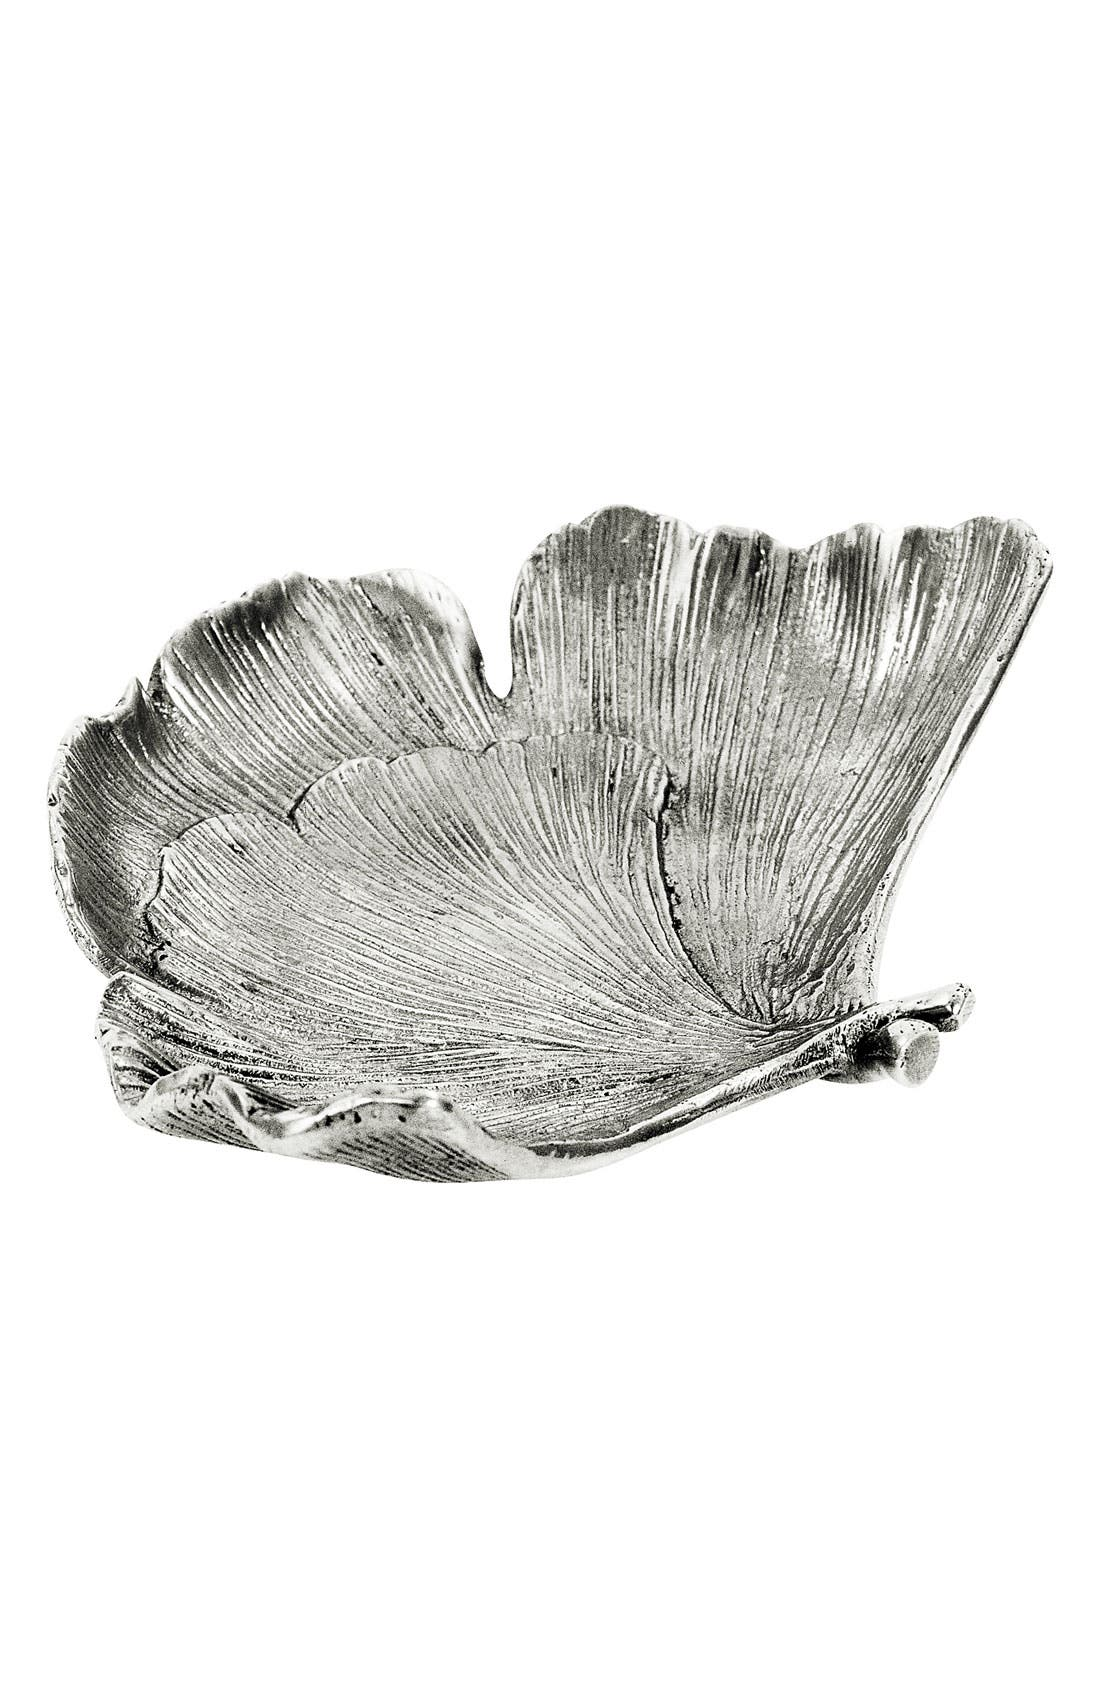 Alternate Image 1 Selected - Michael Aram 'Ginkgo' Mini Dish